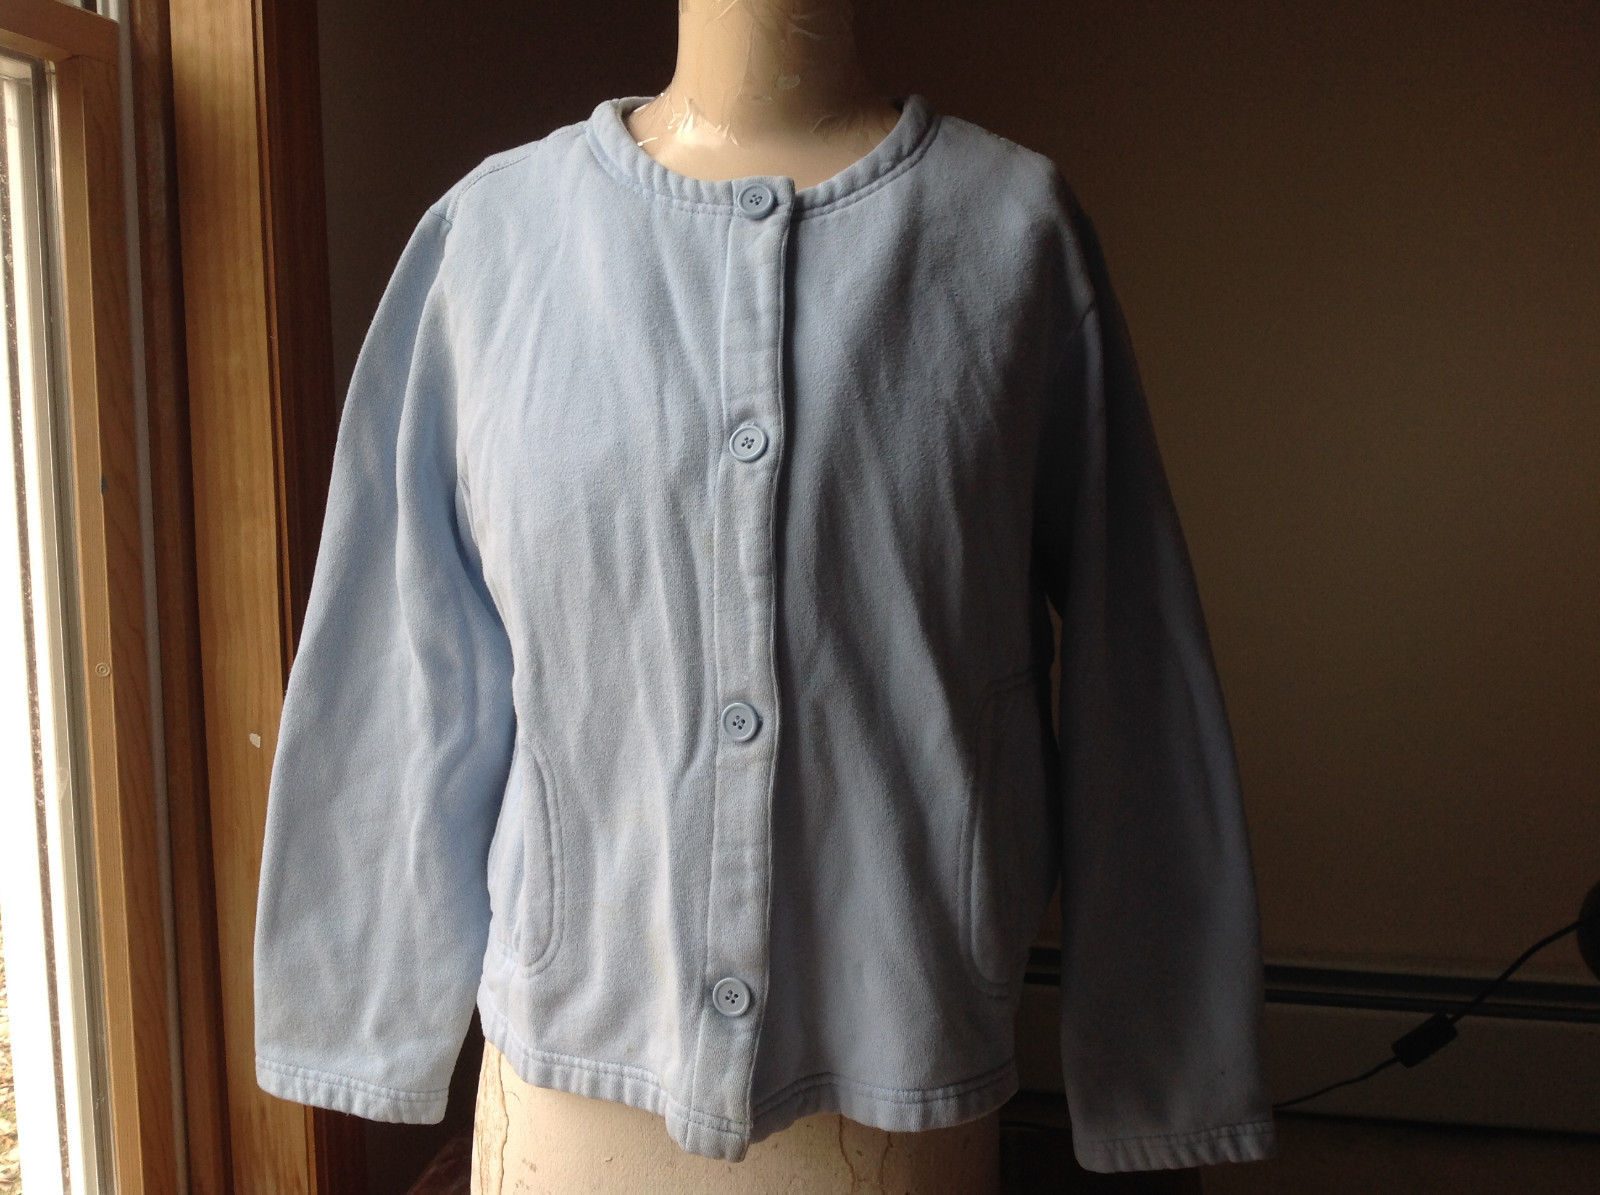 Basic Editions Baby Blue Button Up Closure Sweater with 2 Front Pockets Size XL